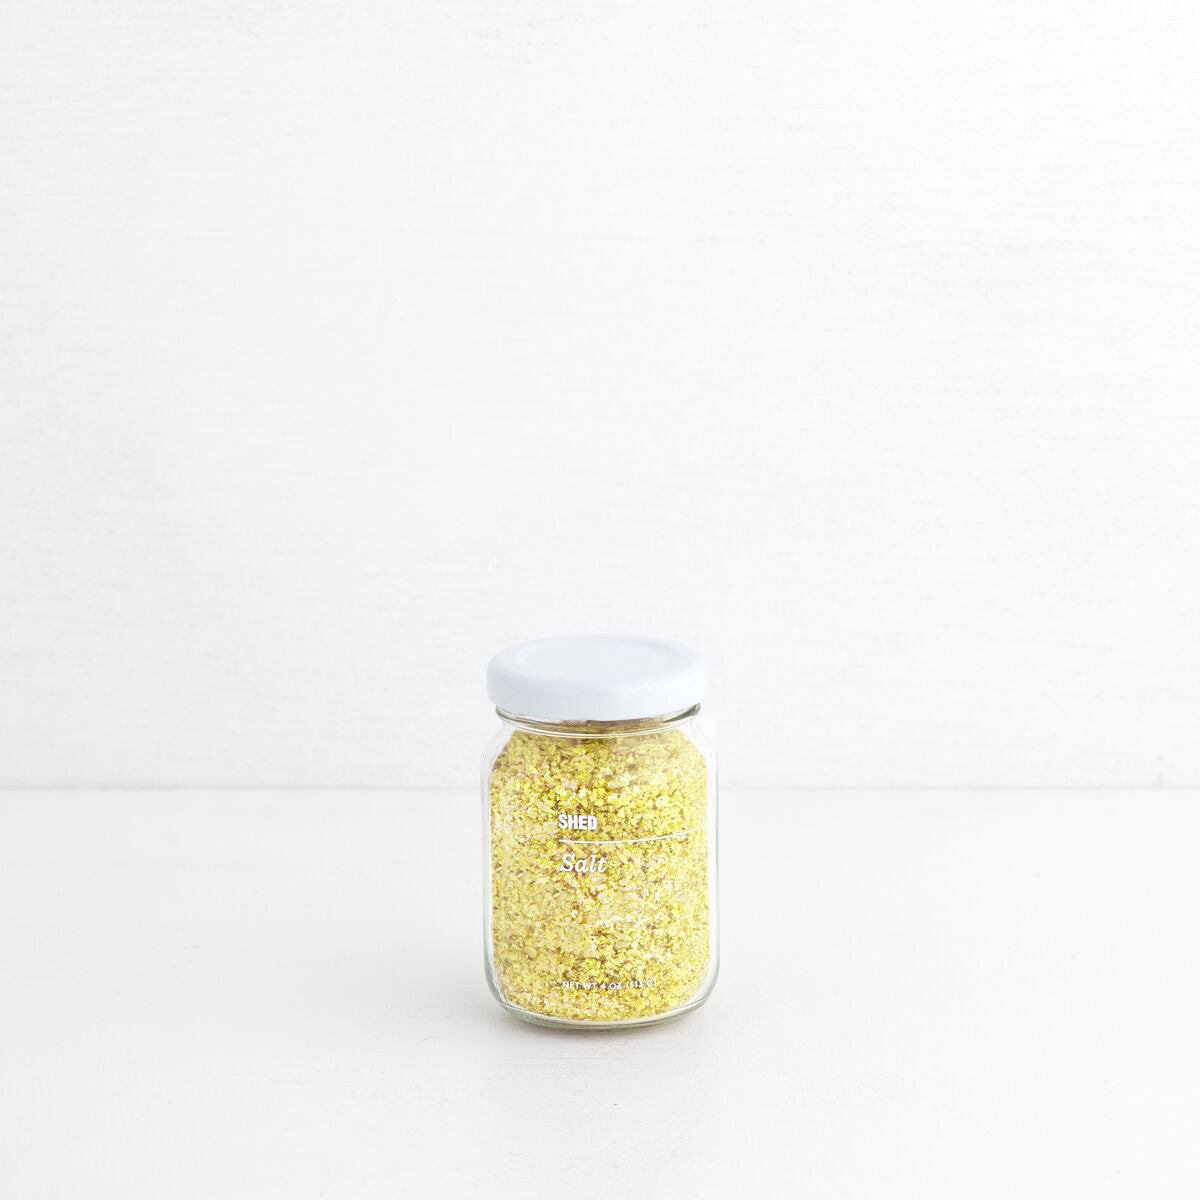 SHED Lemon Salt